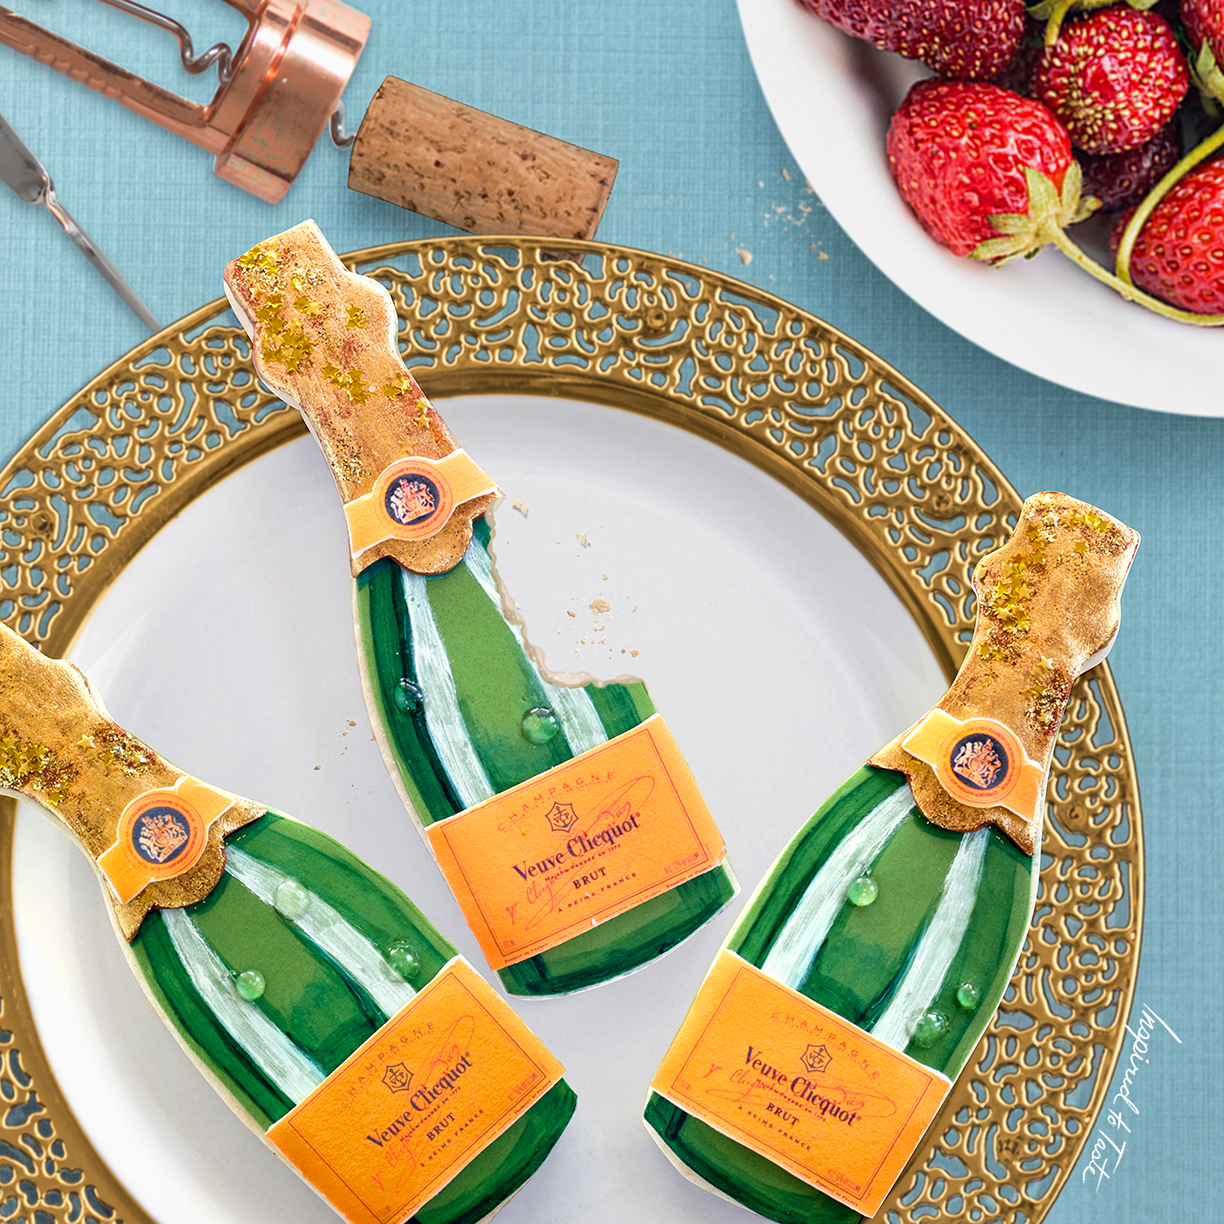 Champagne bottle fondant cookies